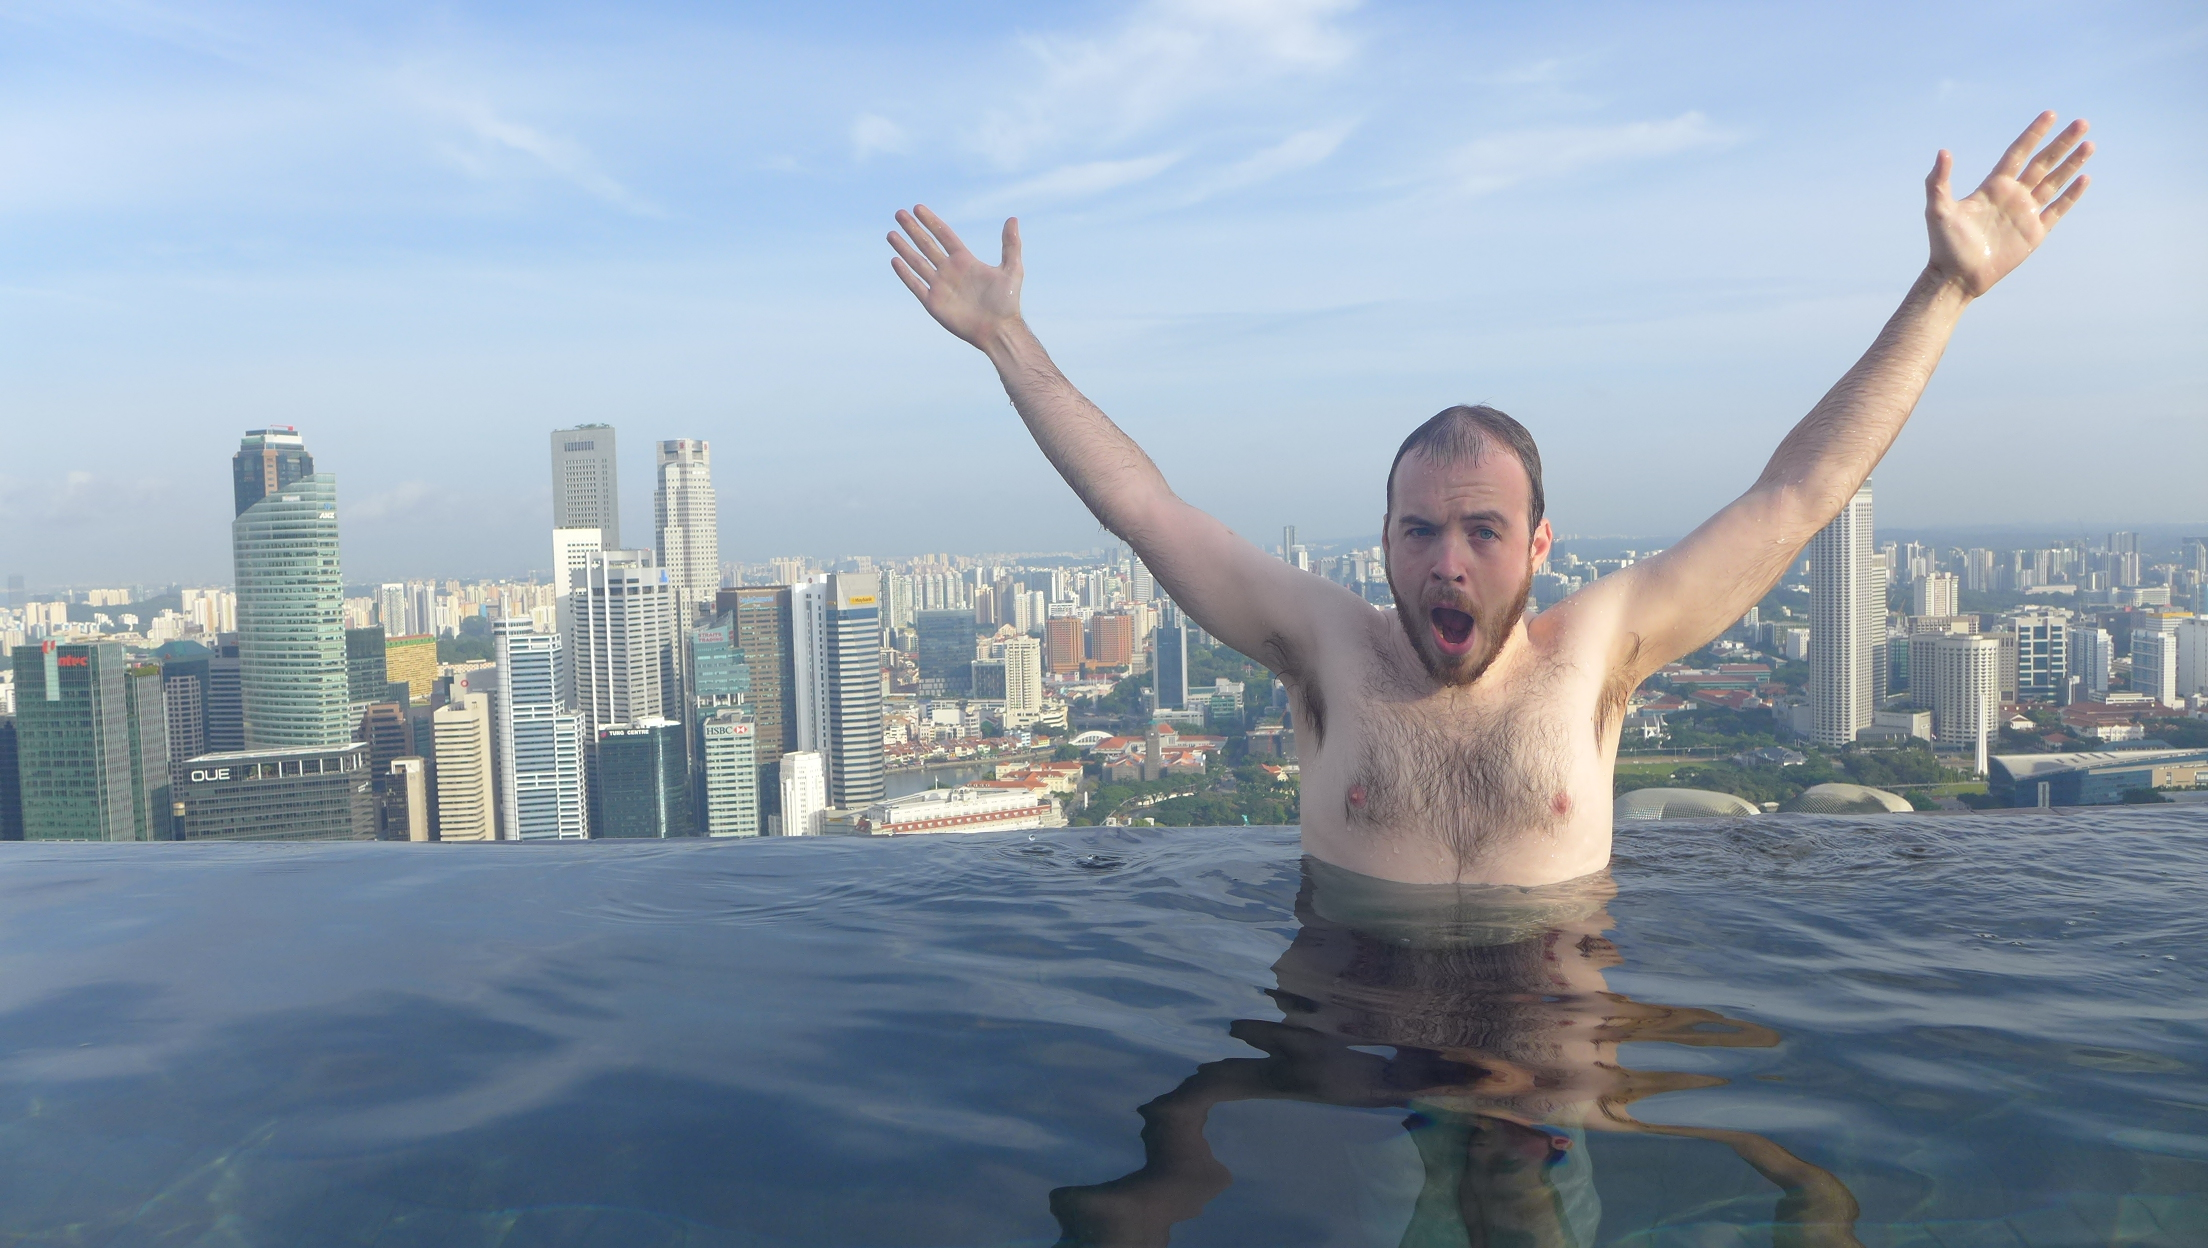 Singapore Hotel With Infinity Pool On Rooftop Image On The Edge Swimming At The Infinity Pool In Singapore